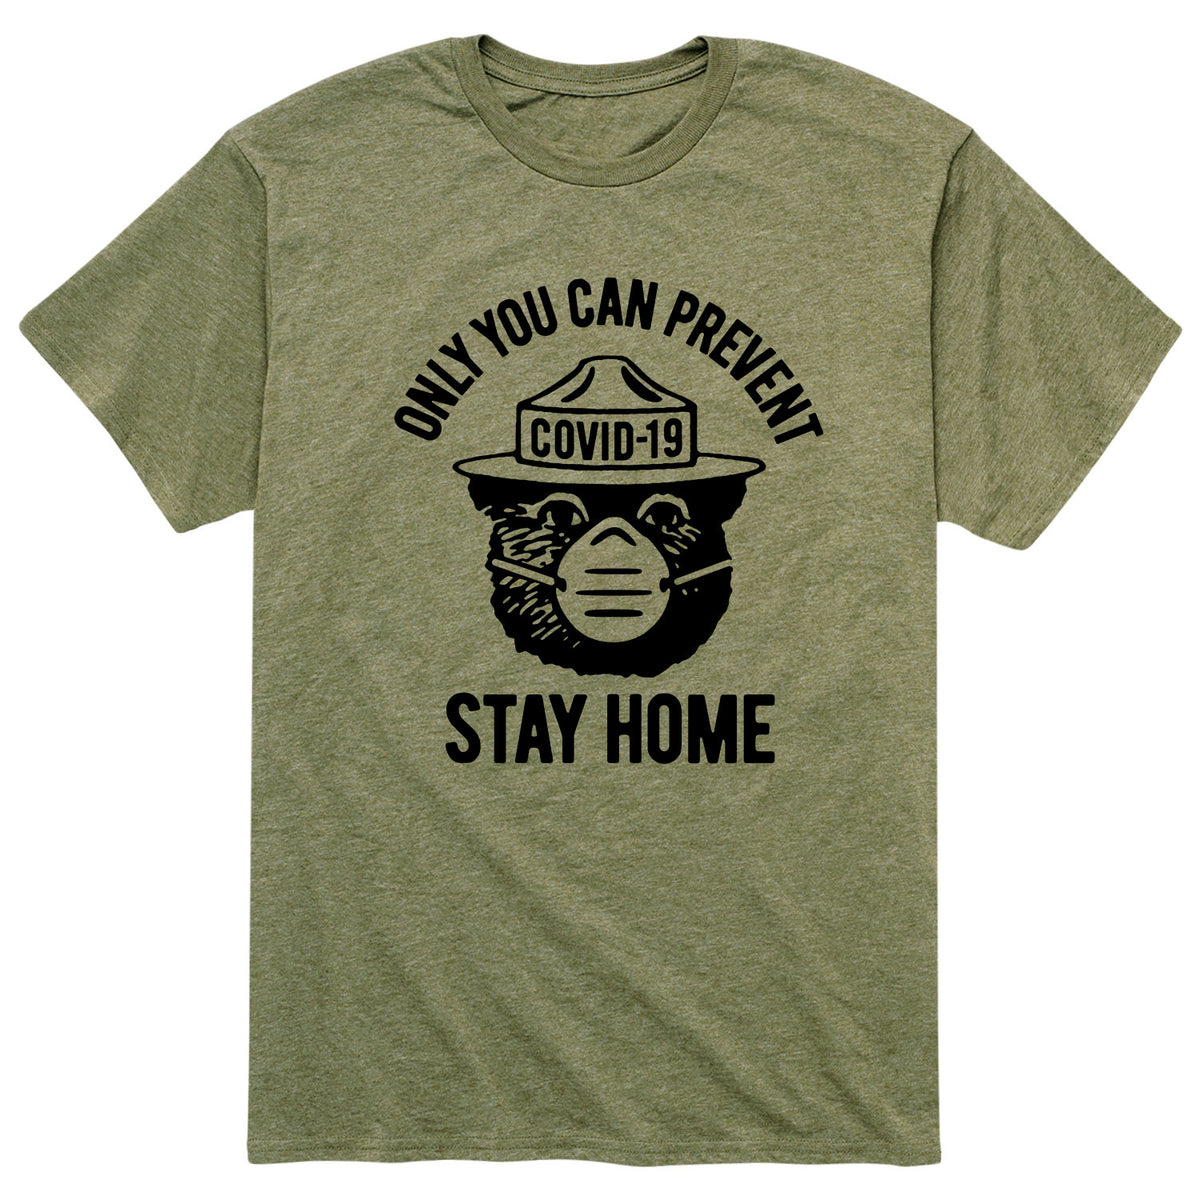 Only You Can Prevent Covid-19 - Men's Short Sleeve T-Shirt